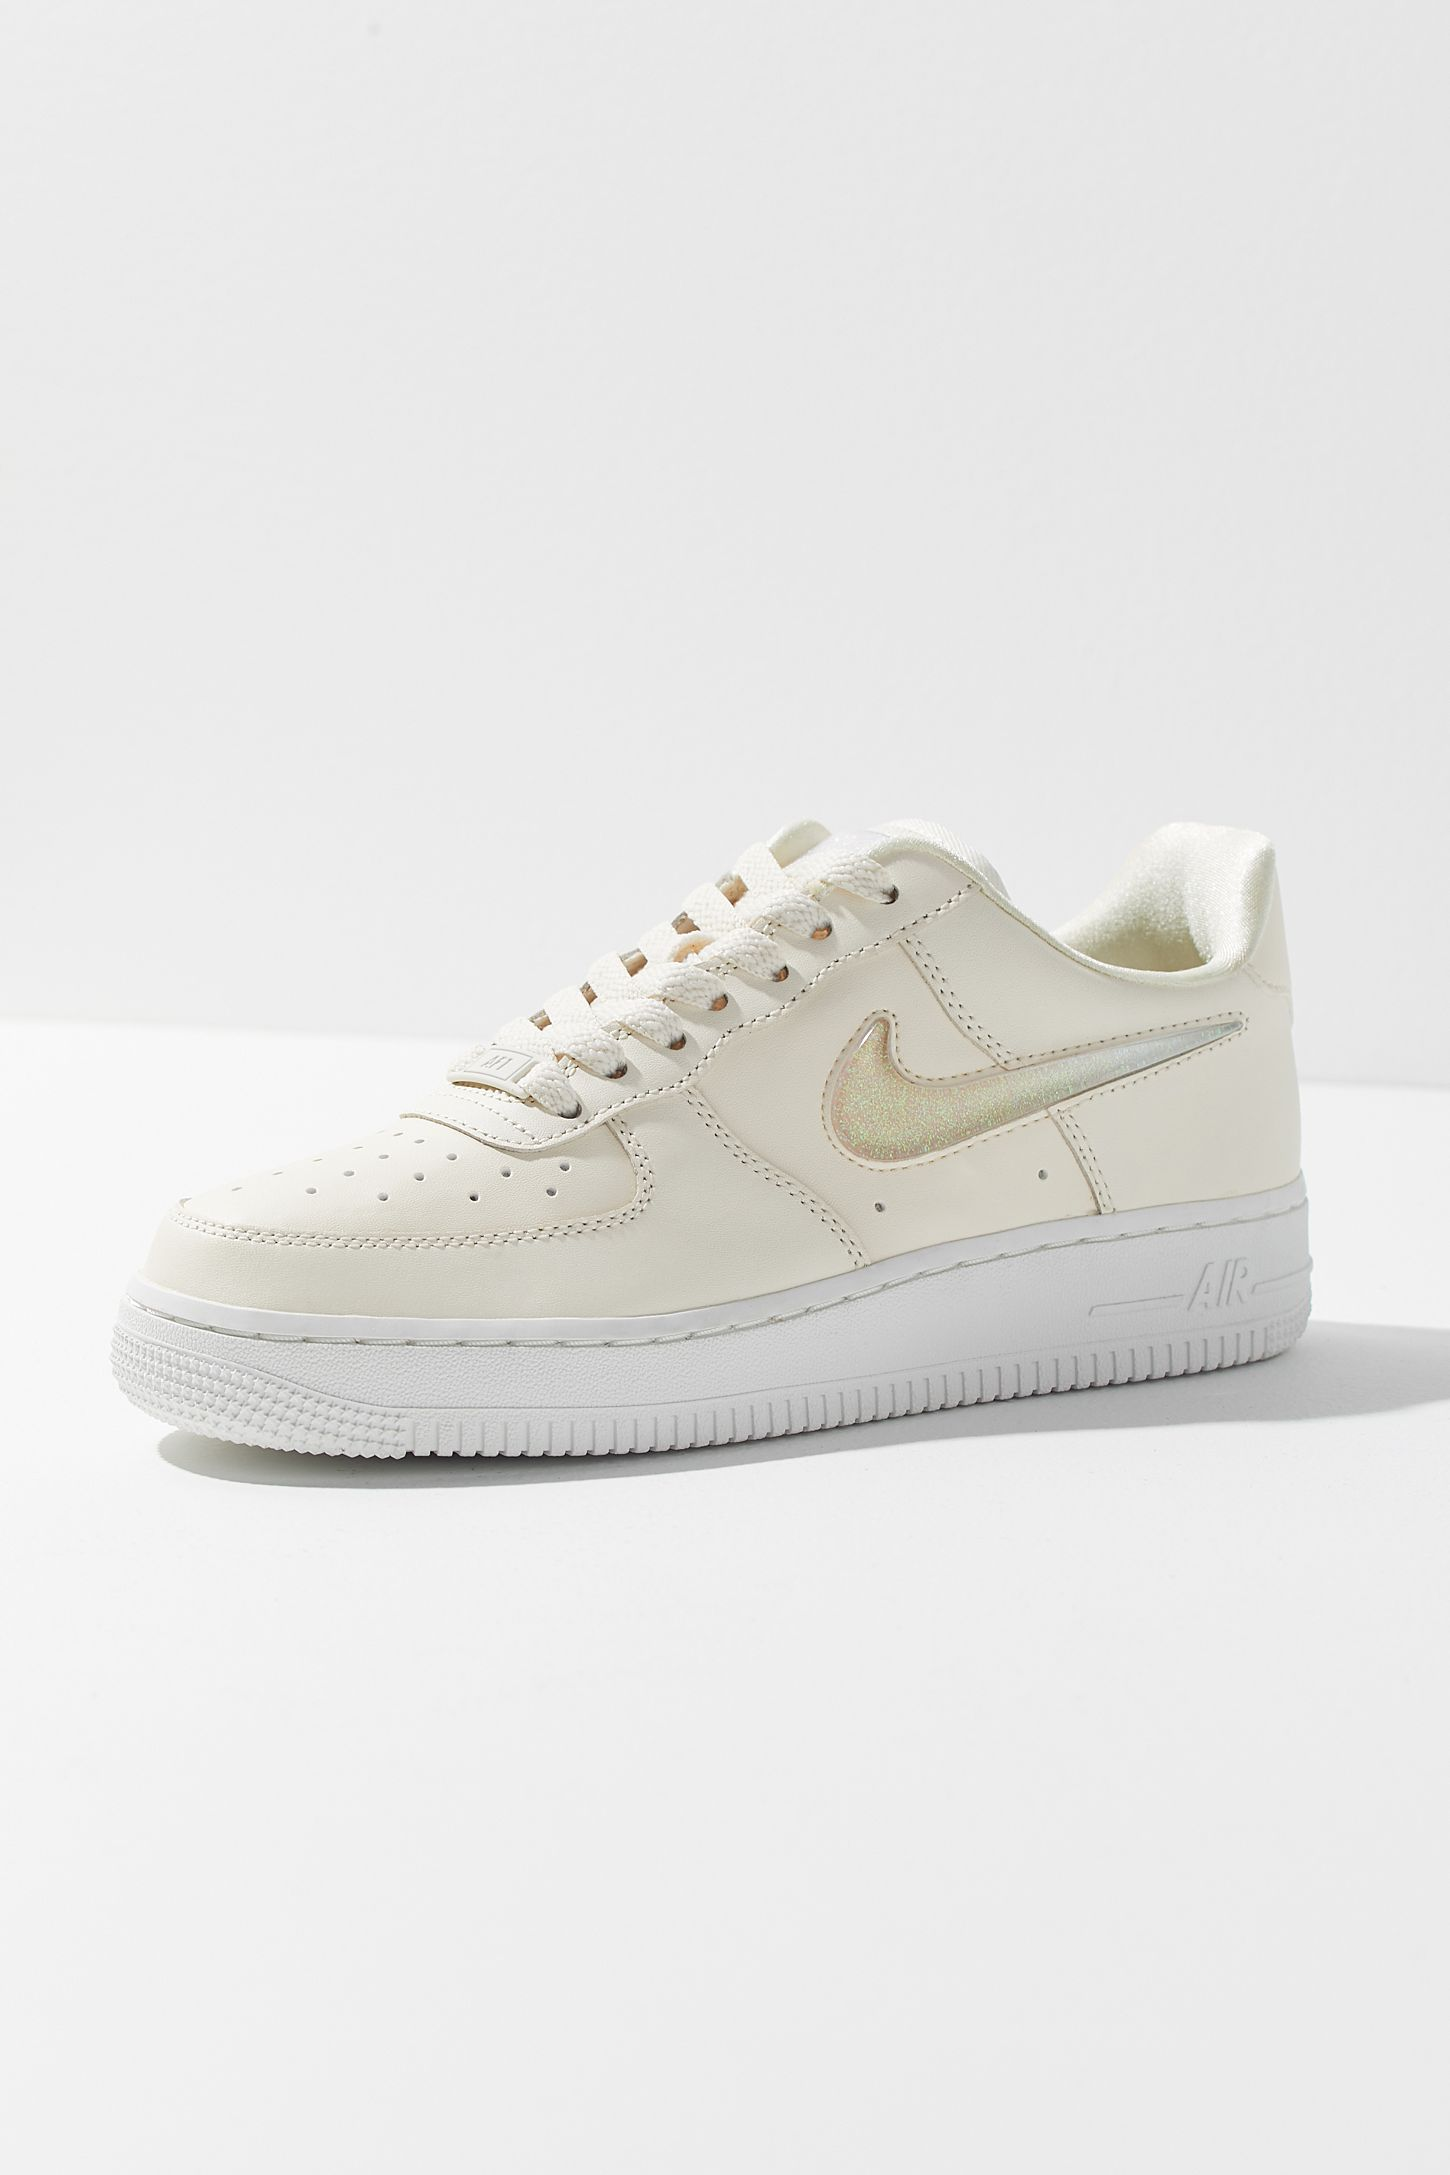 info for 8c692 a5956 Nike Air Force 1  07 Premium LX Sneaker   Urban Outfitters